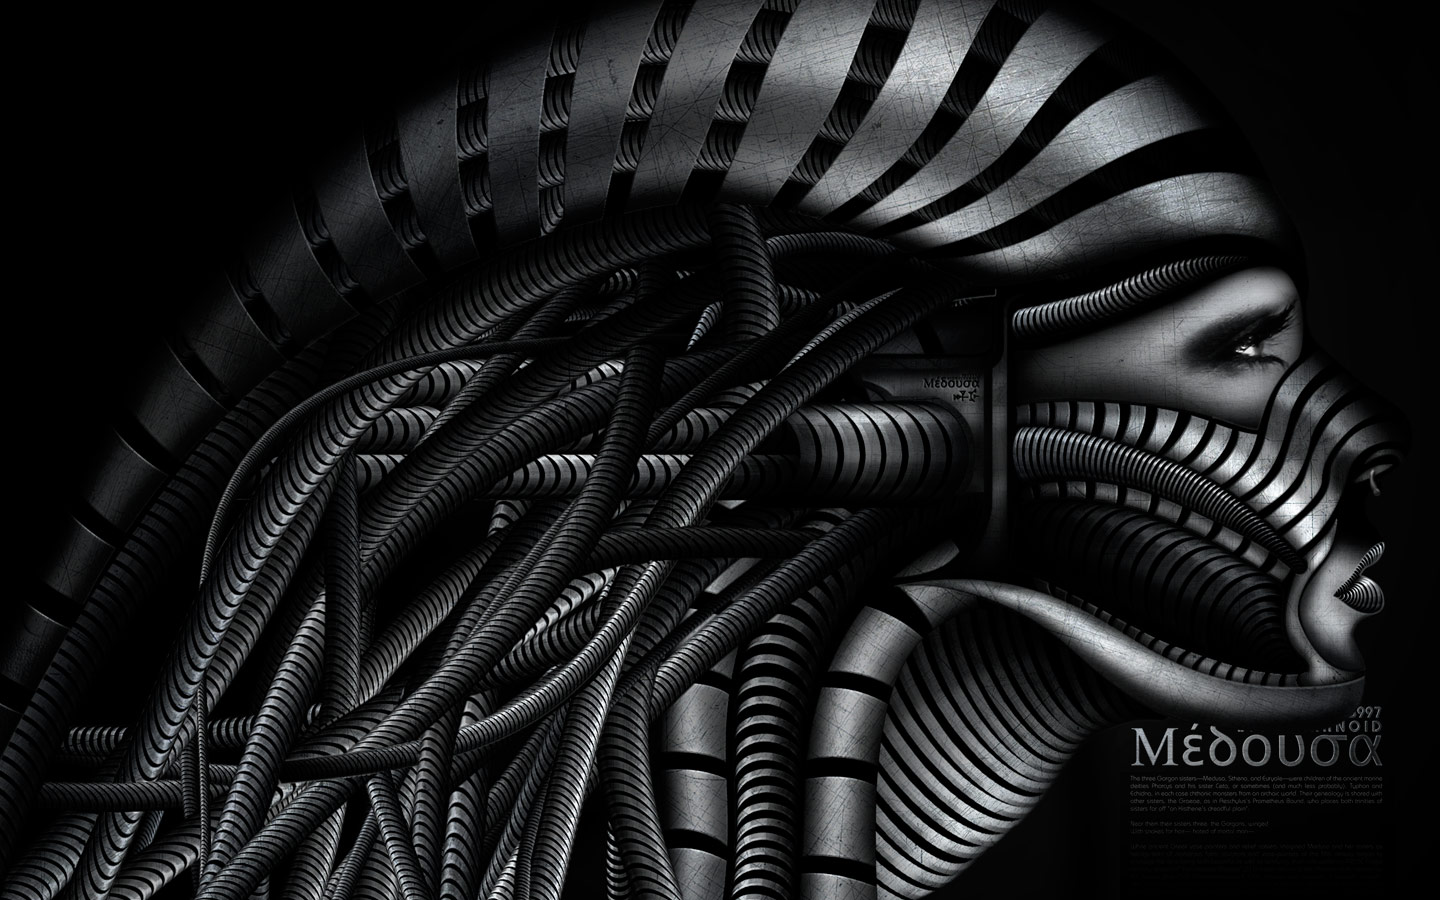 Biomechanoid Medusa - Laurent Lemoigne - Donanubis - Don Anubis - Graphic Art - Digital Art - Geneva - Switzerland - Surreal - Conceptual -People - Dark - Fantasy - Beauty - Woman - Steel - Metal - Snake - Medusa - Gorgon - Mythology - Mechanic - Biomechanic - Biomechanik - Biomechanical - Biomechanoid - Giger - Metal - Hard - Rock - Death - Band - Illustration